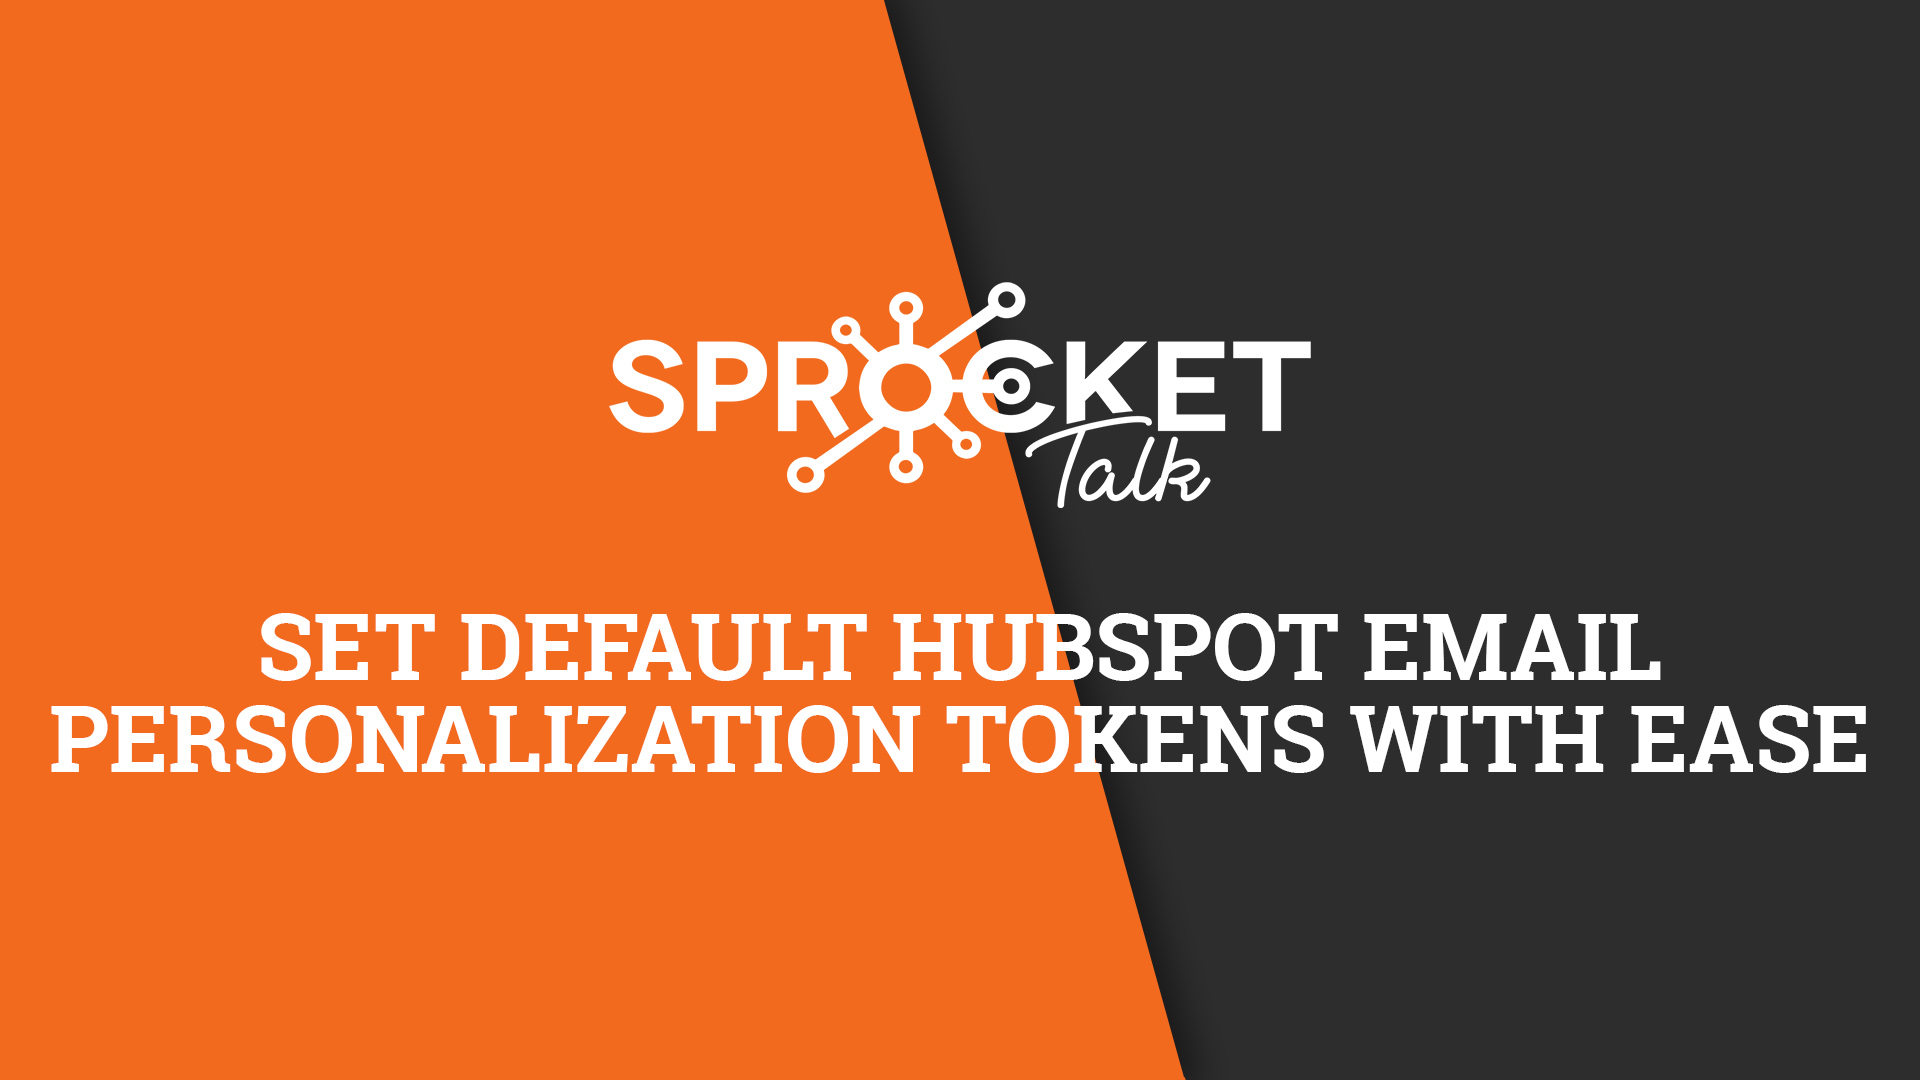 Set Default HubSpot Email Personalization Tokens With Ease